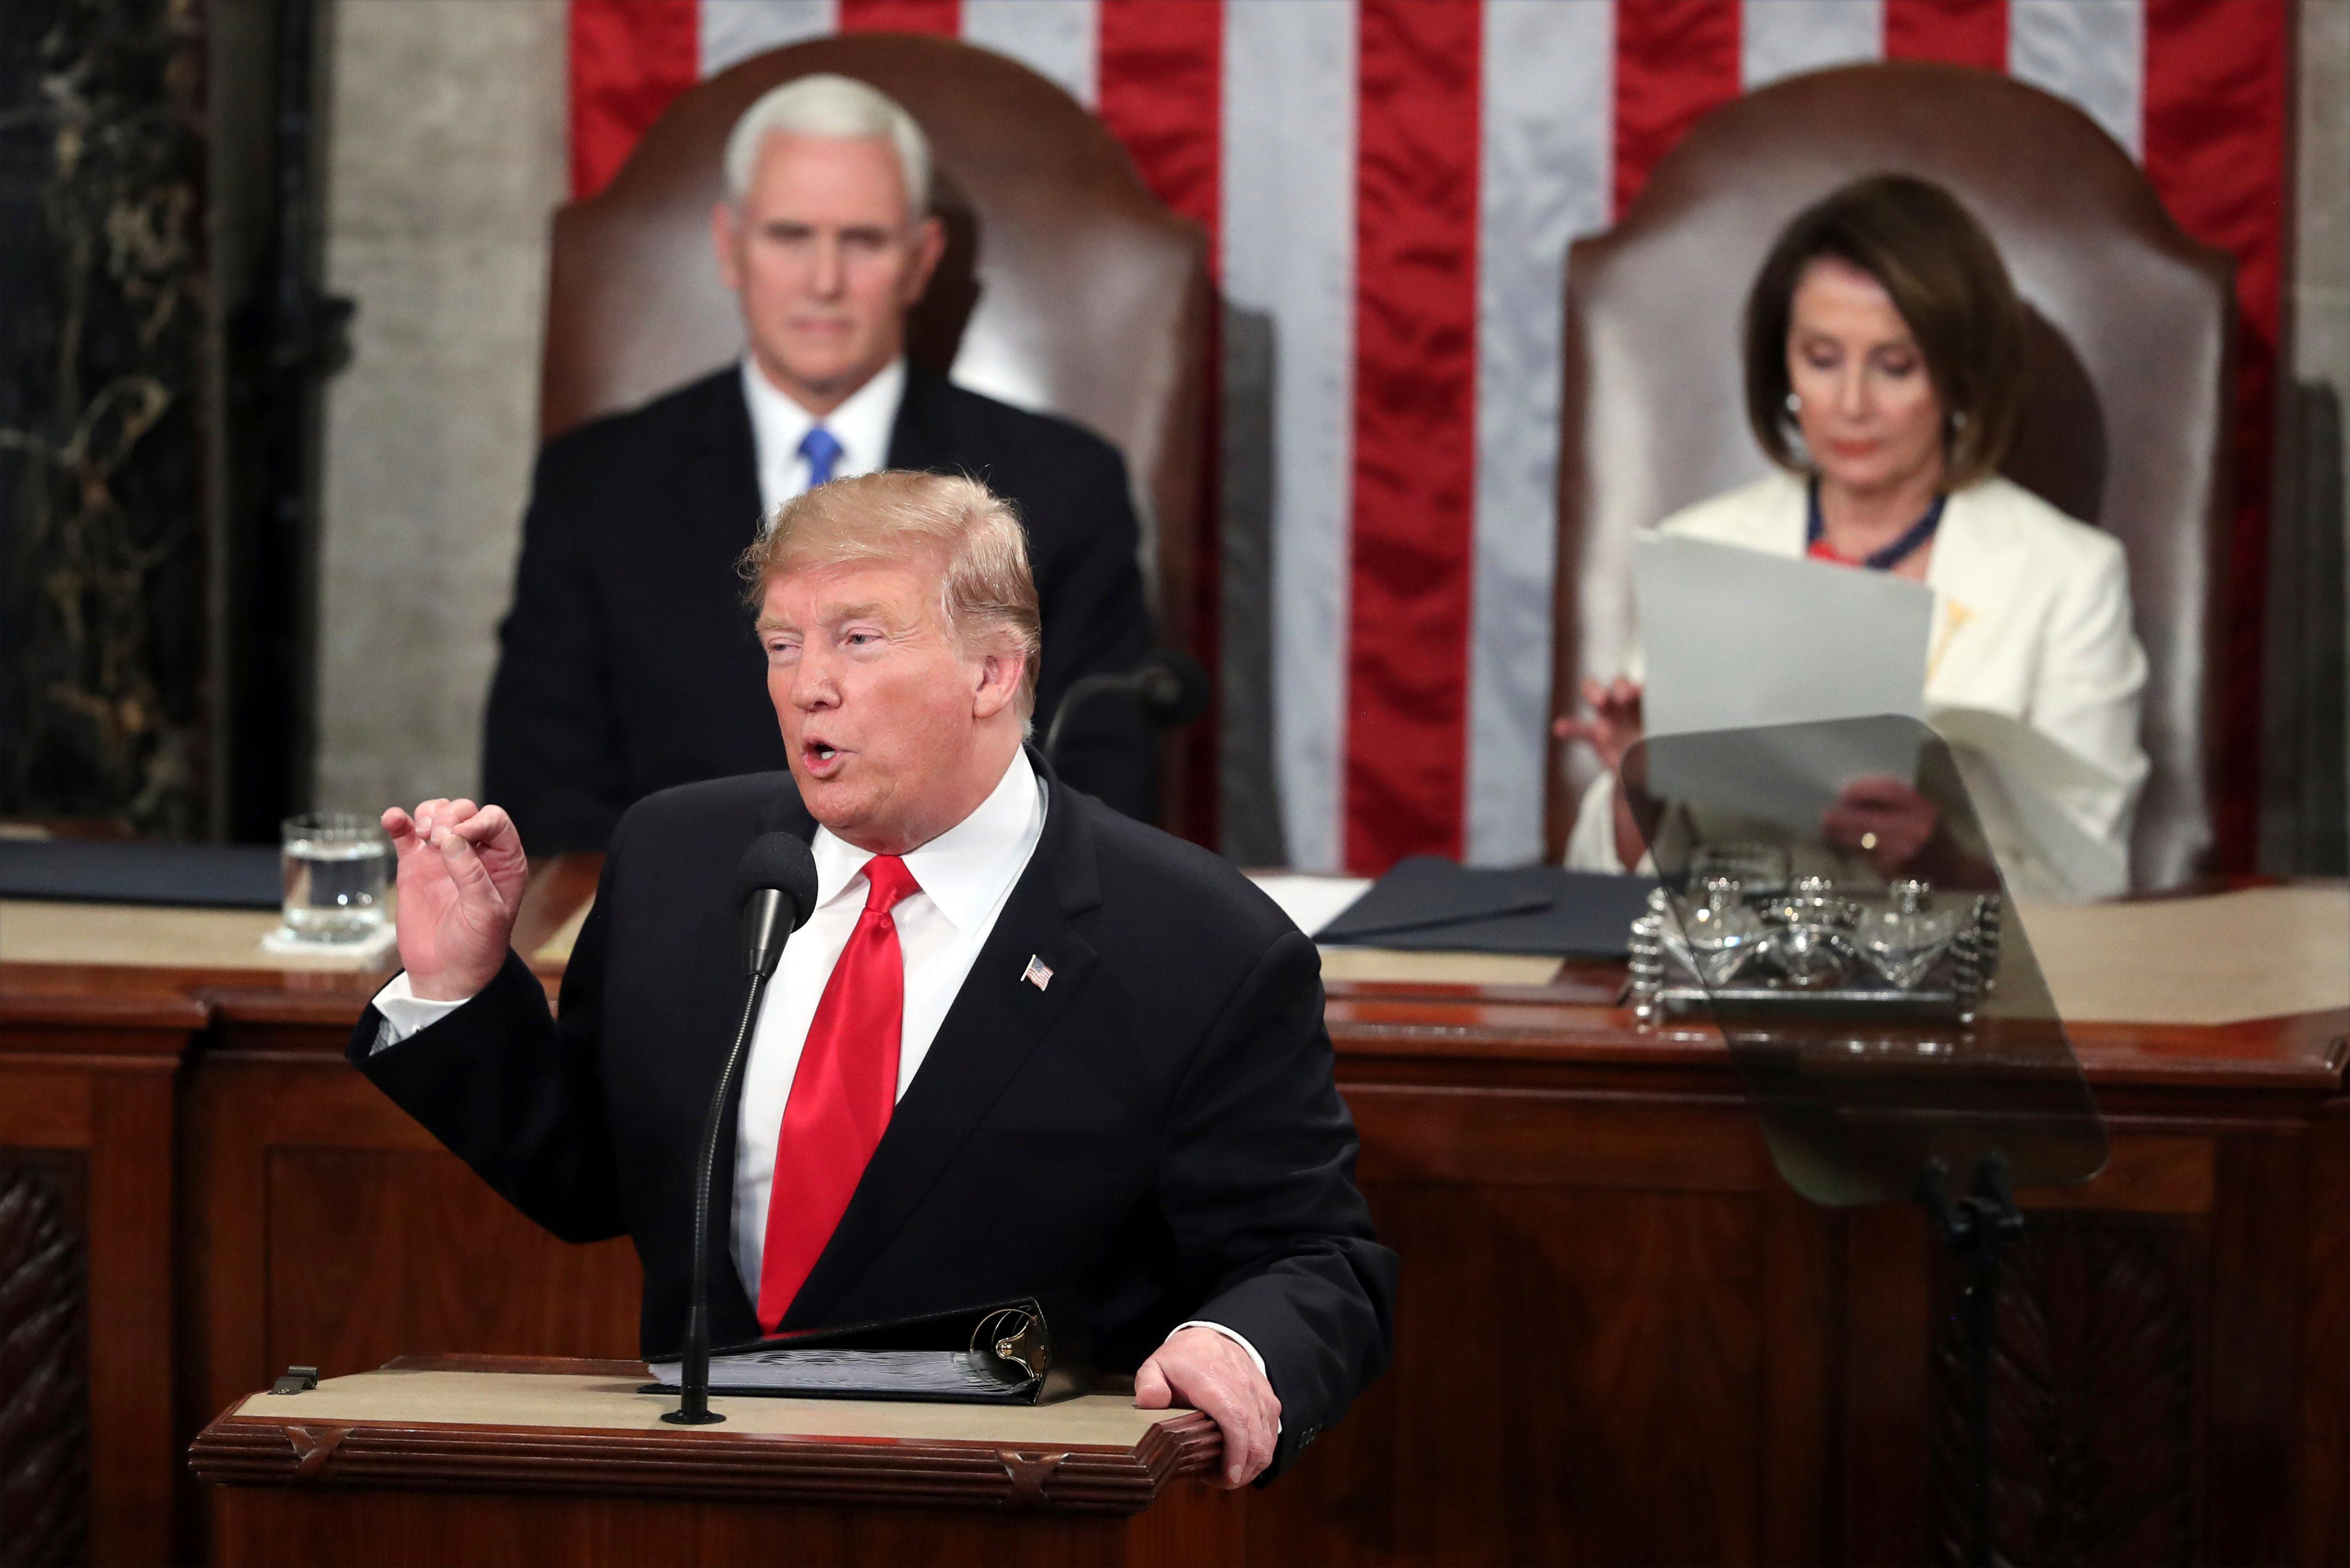 Trump Makes No Mention Of The Longest Shutdown In History In State Of The